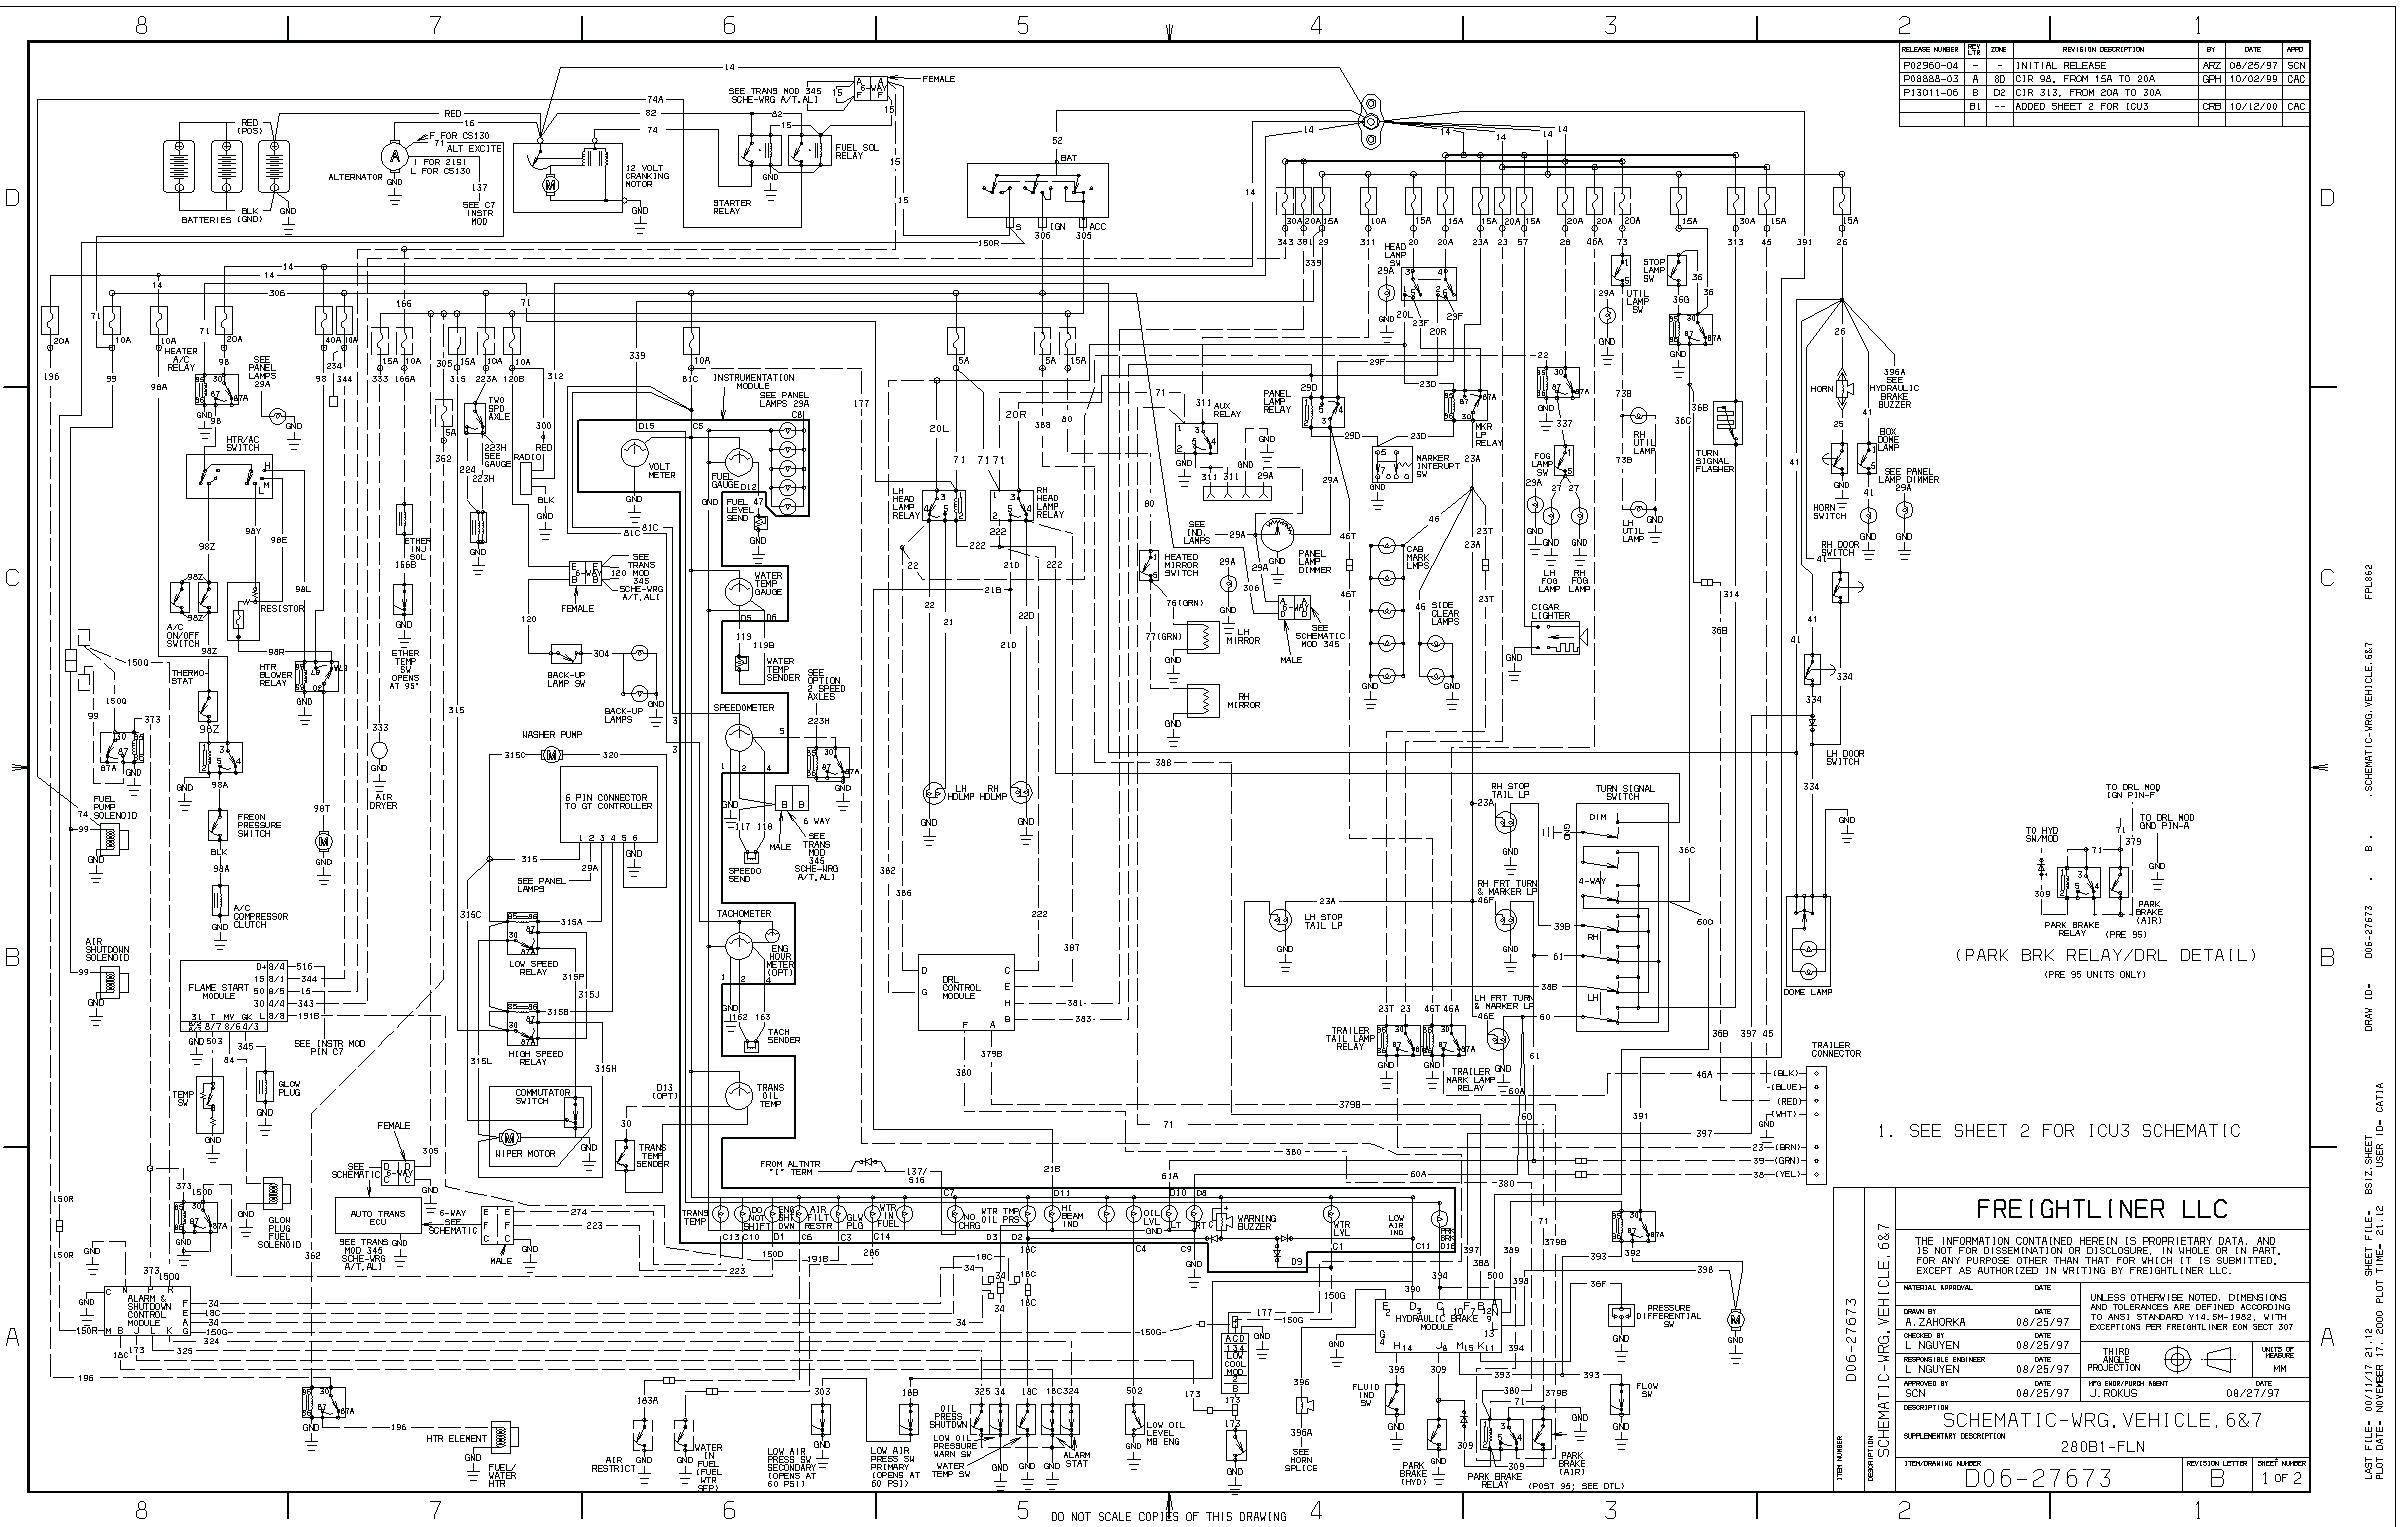 2002 toyota camry engine diagram replacing the rear strut